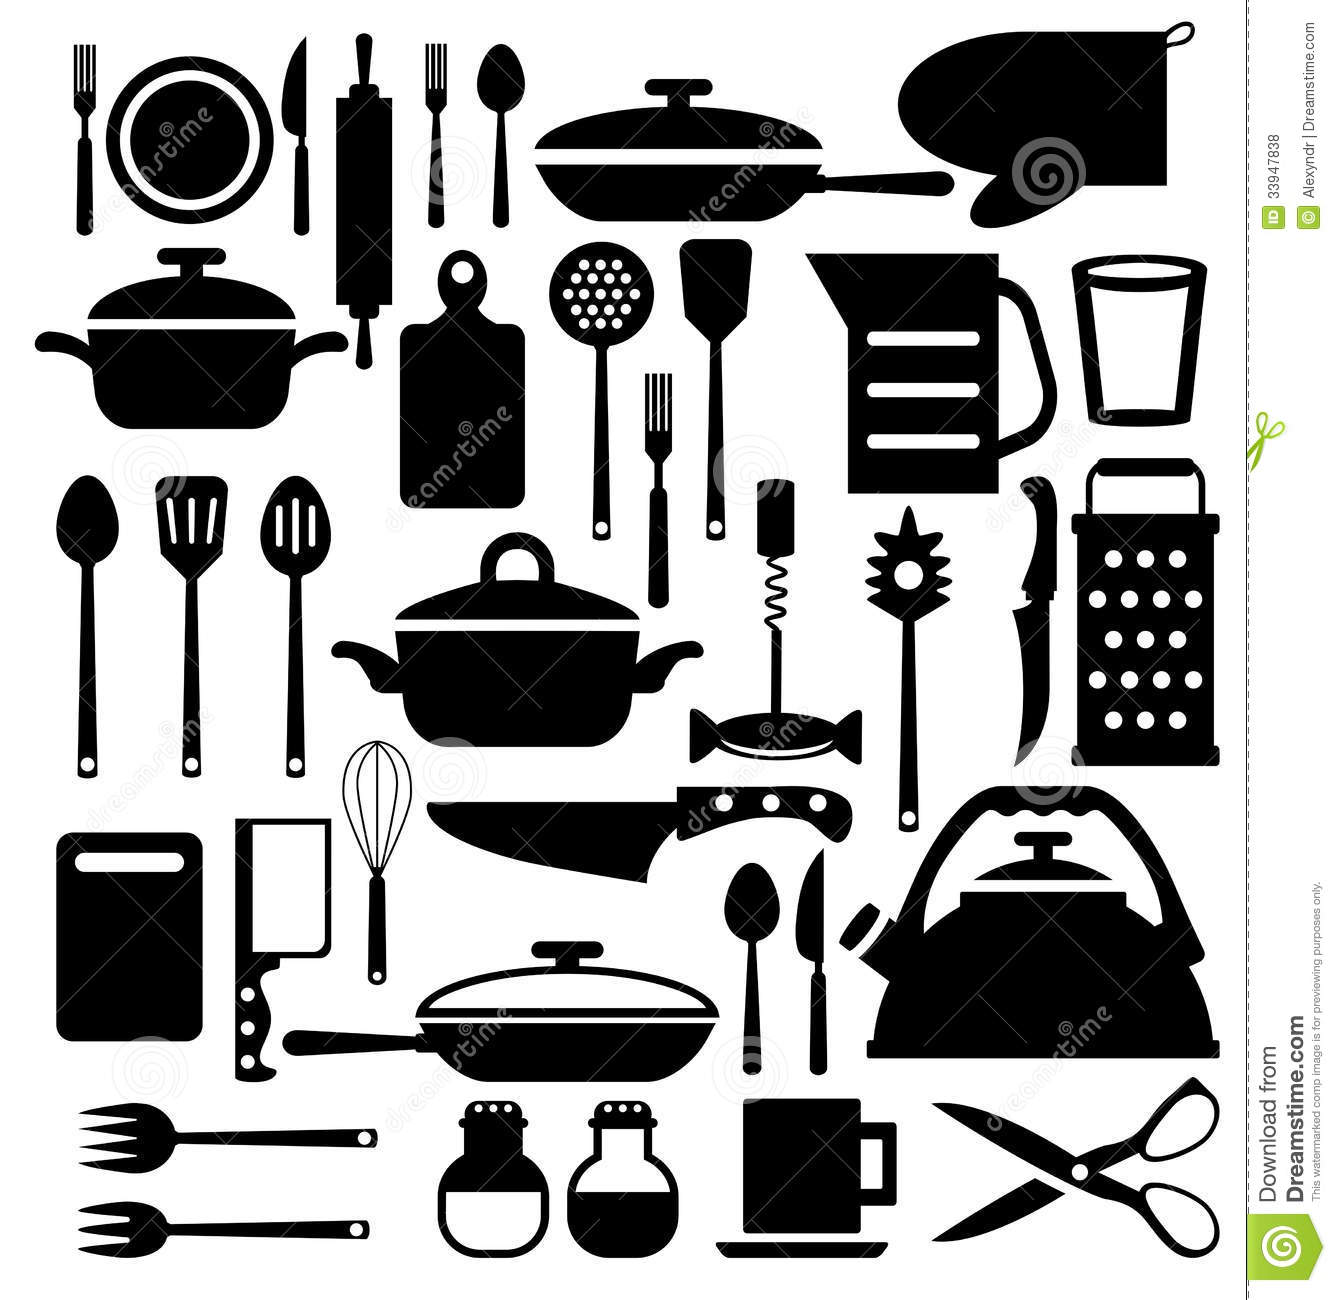 Kitchen Tool Cutlery Vector Icons Set Royalty Free Stock Photos Image 33947838